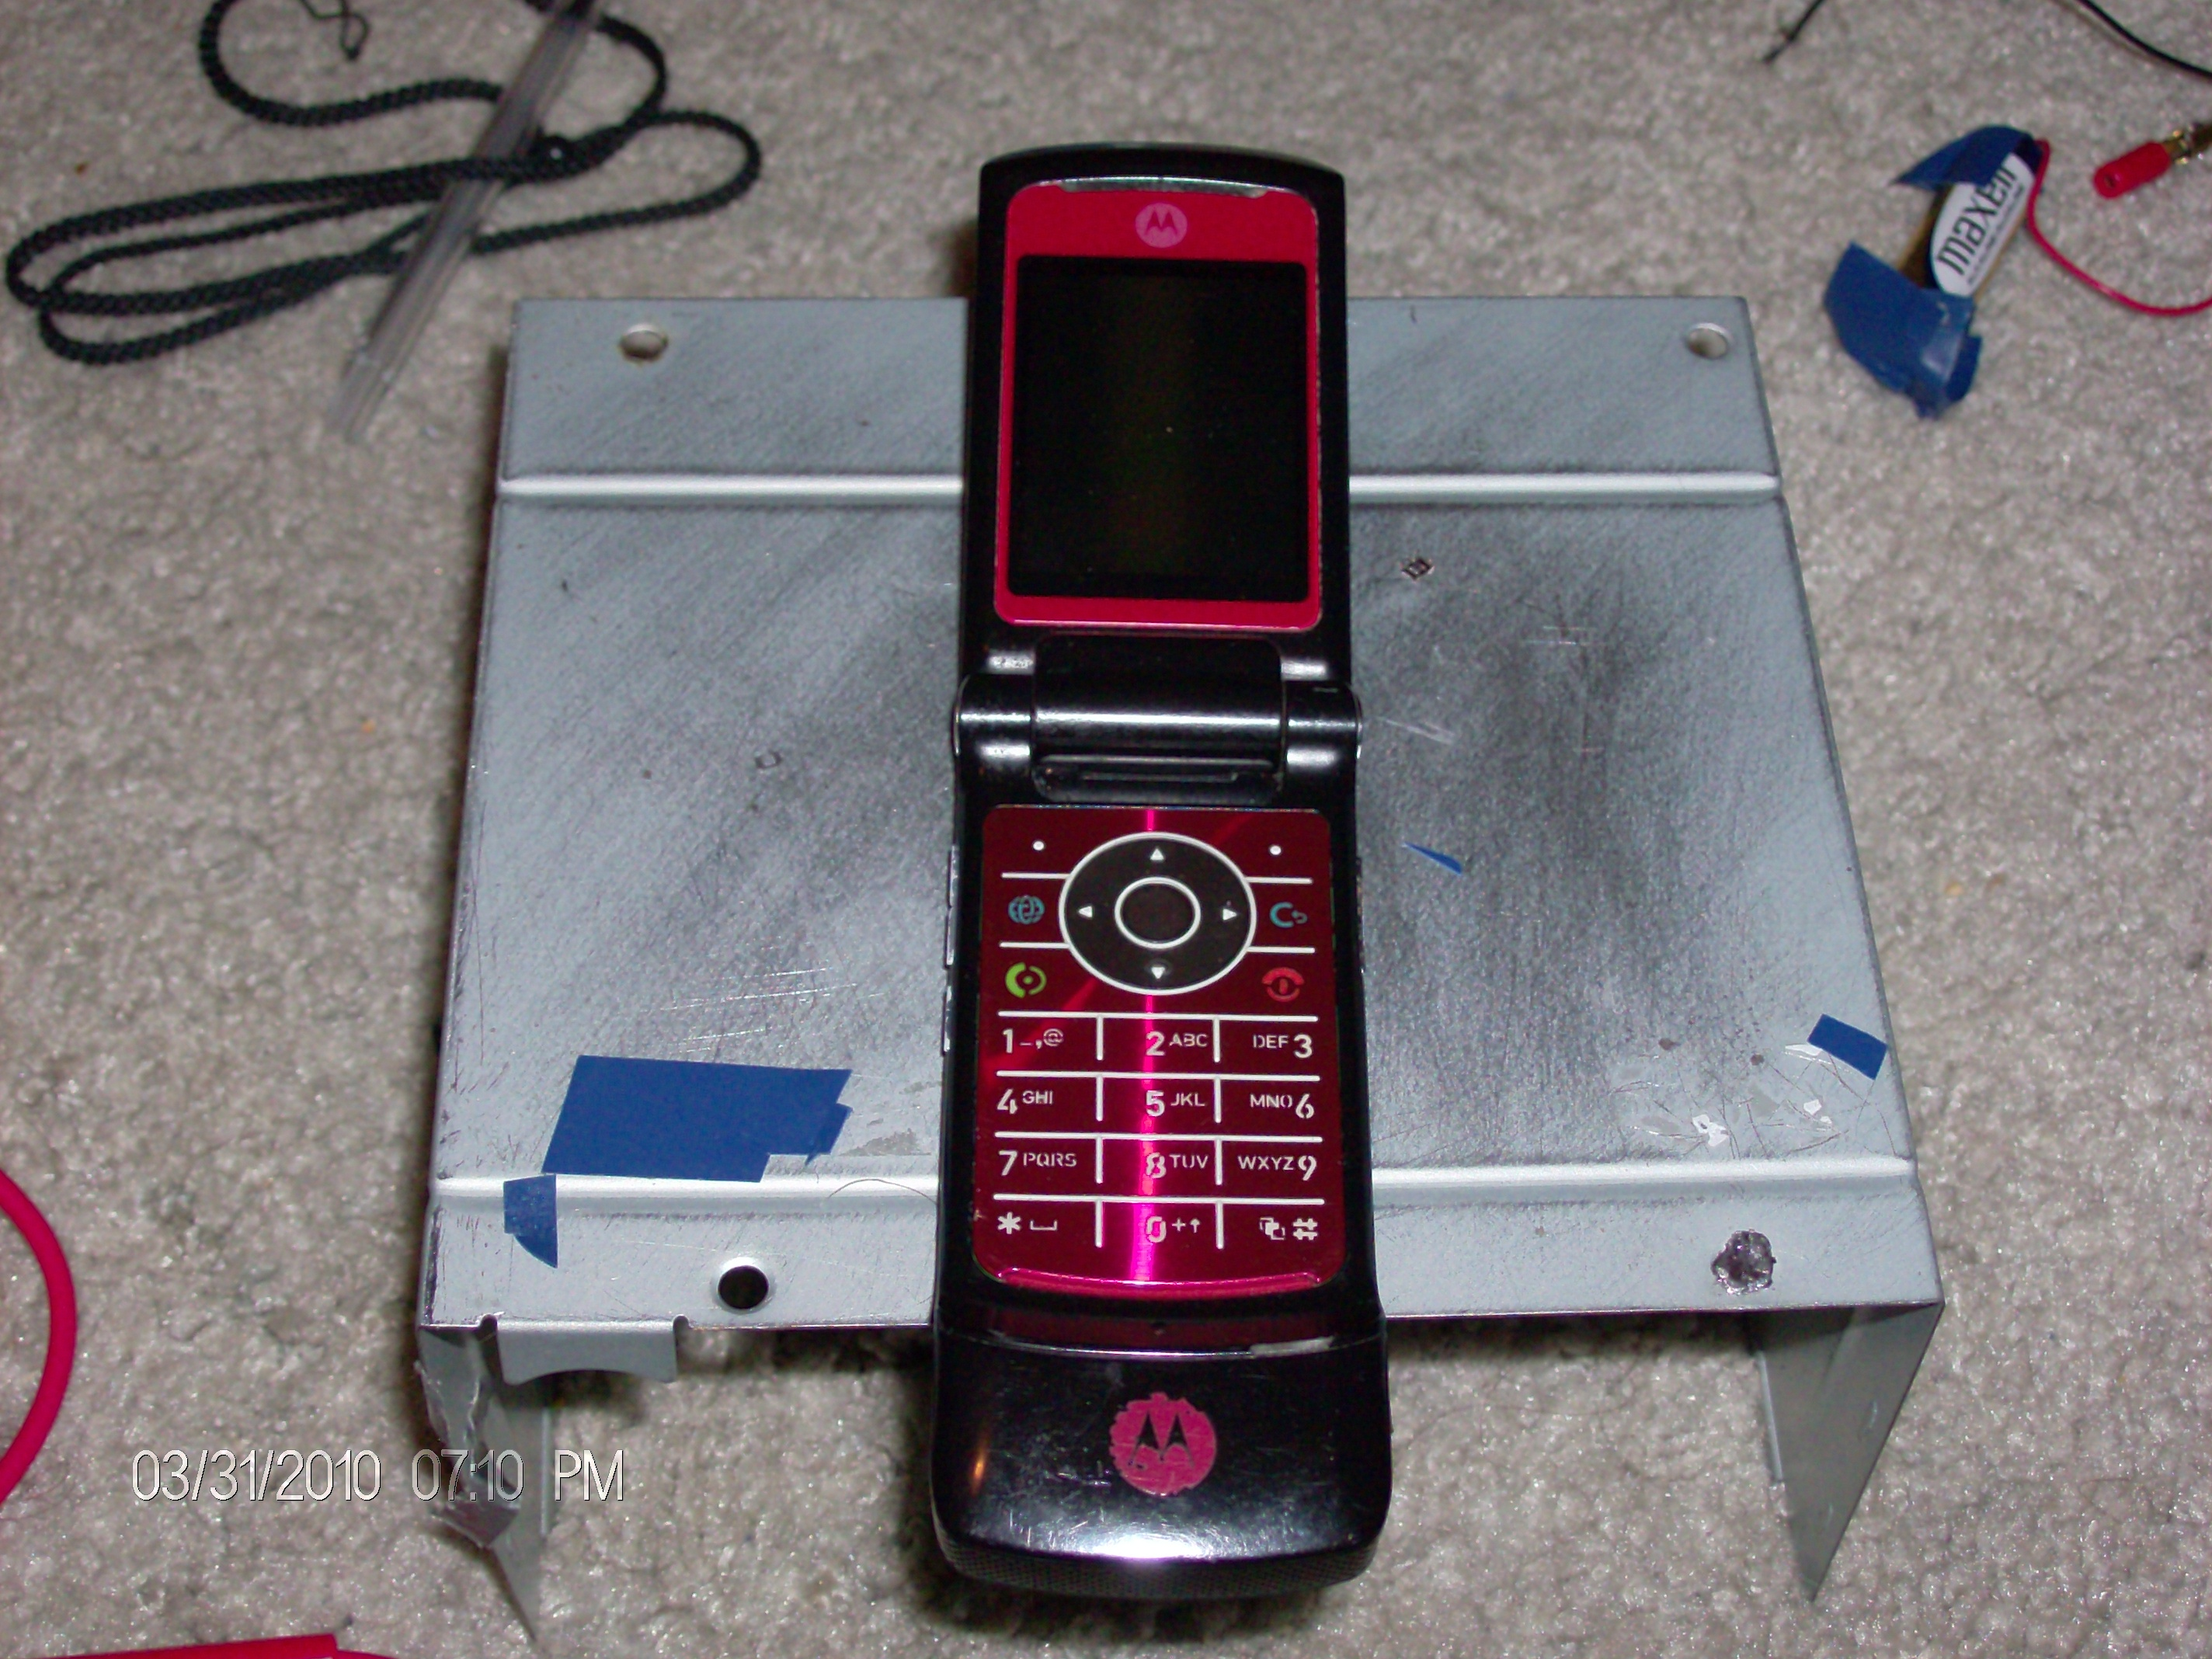 Picture of Dissasembly of Motorola K1 Cellphone